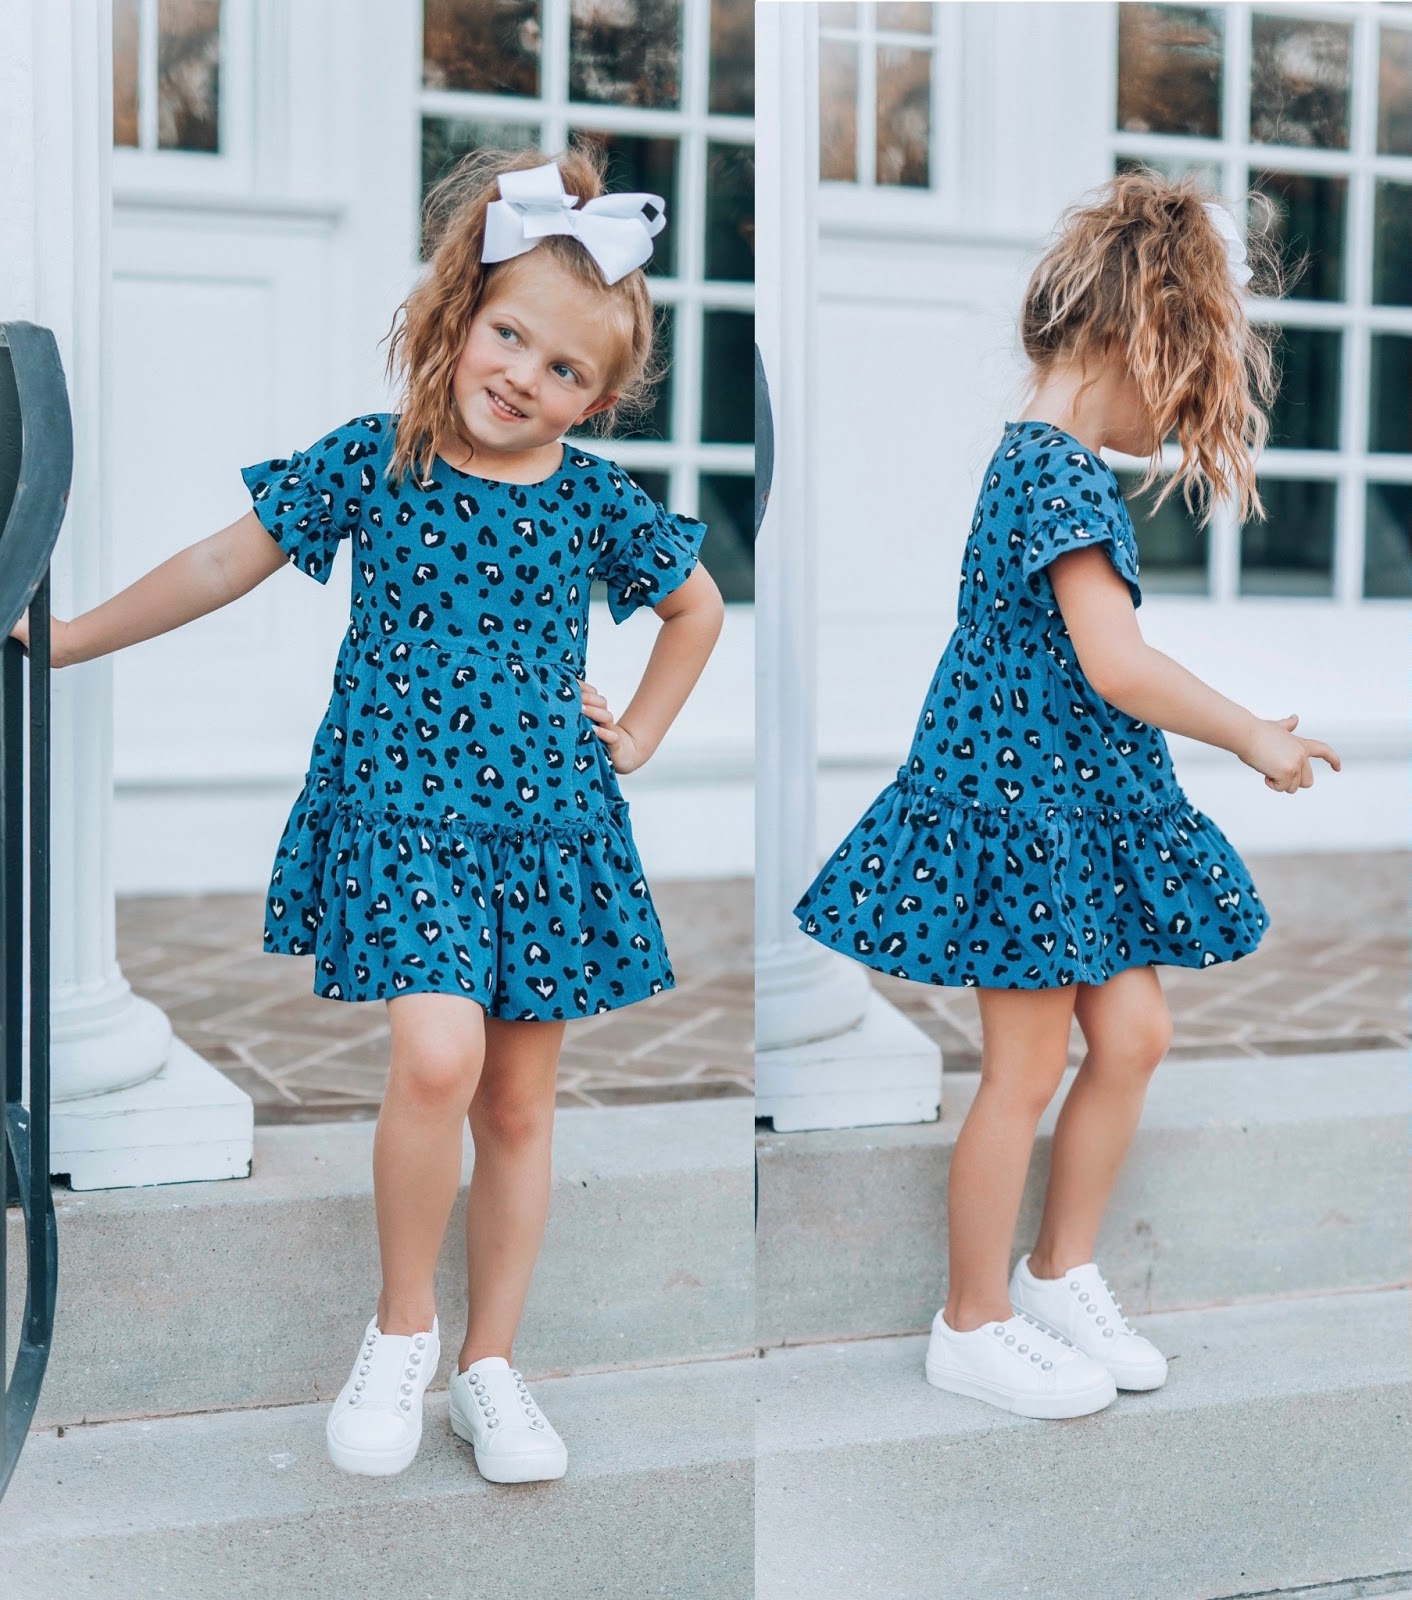 Cute Outfit Ideas for Kids - Something Delightful Blog #WalmartFashion #affordablefashion #kidsoutfitideas